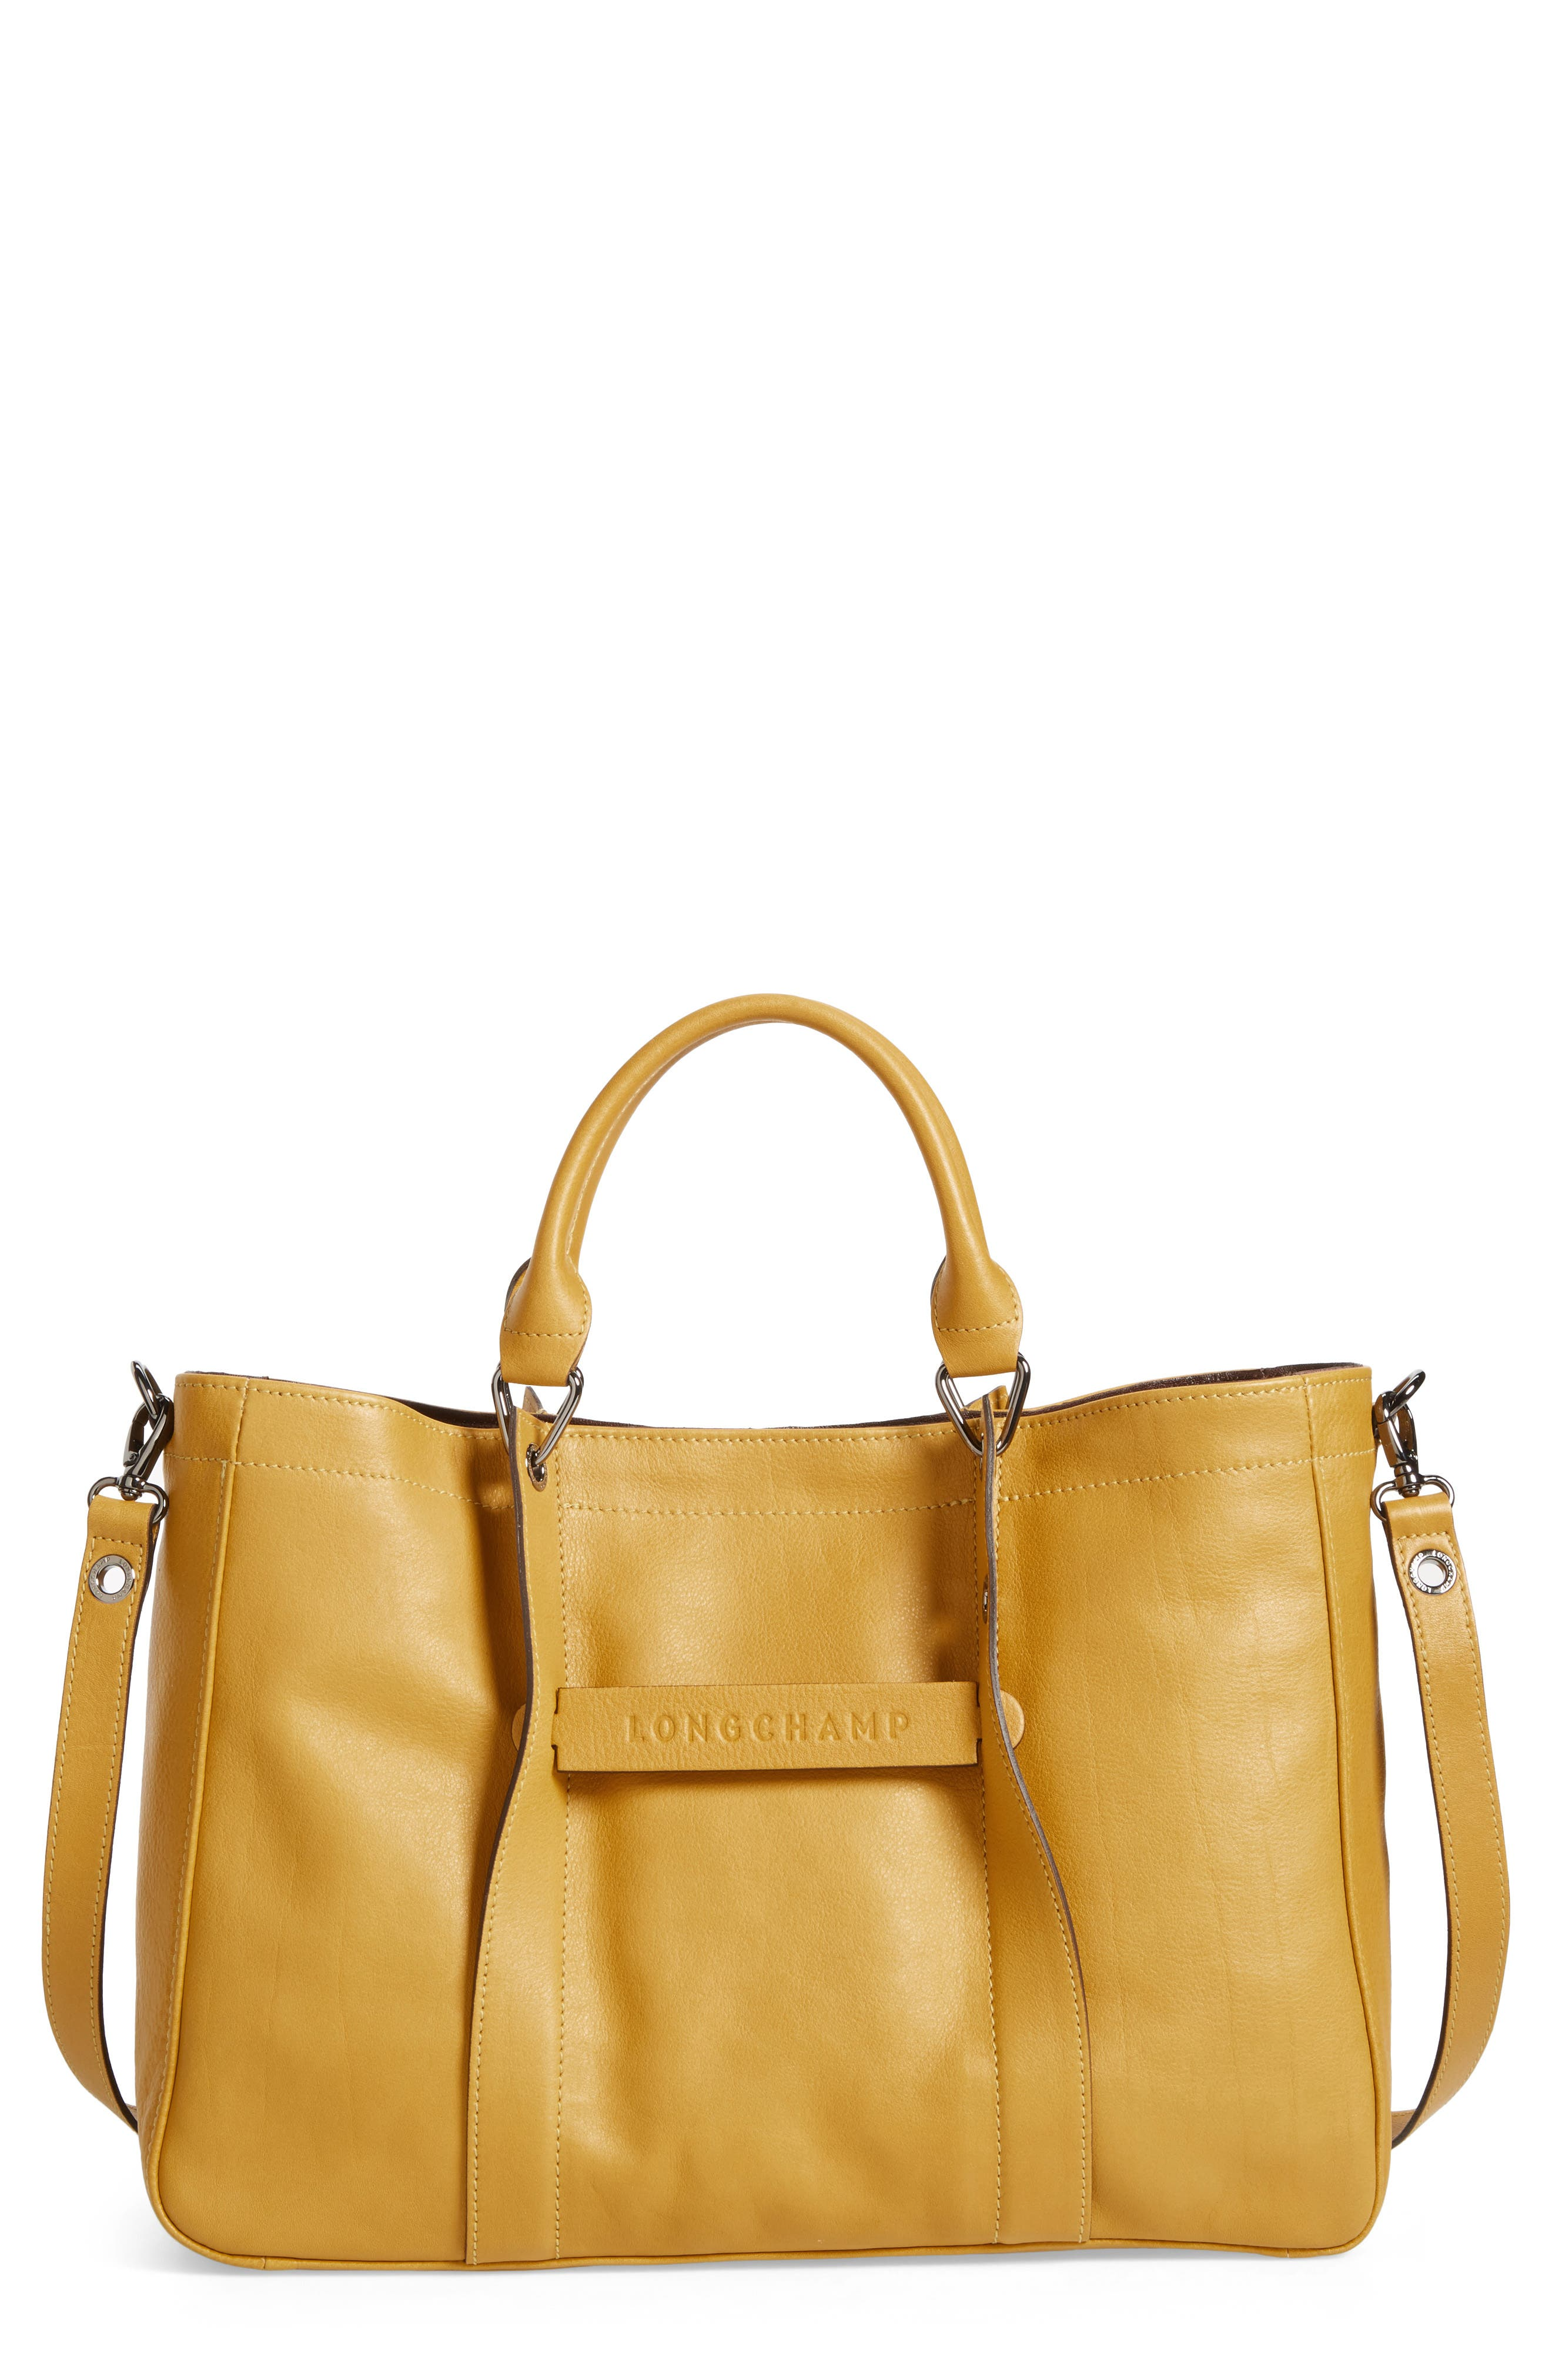 Alternate Image 1 Selected - Longchamp 3D Leather Tote